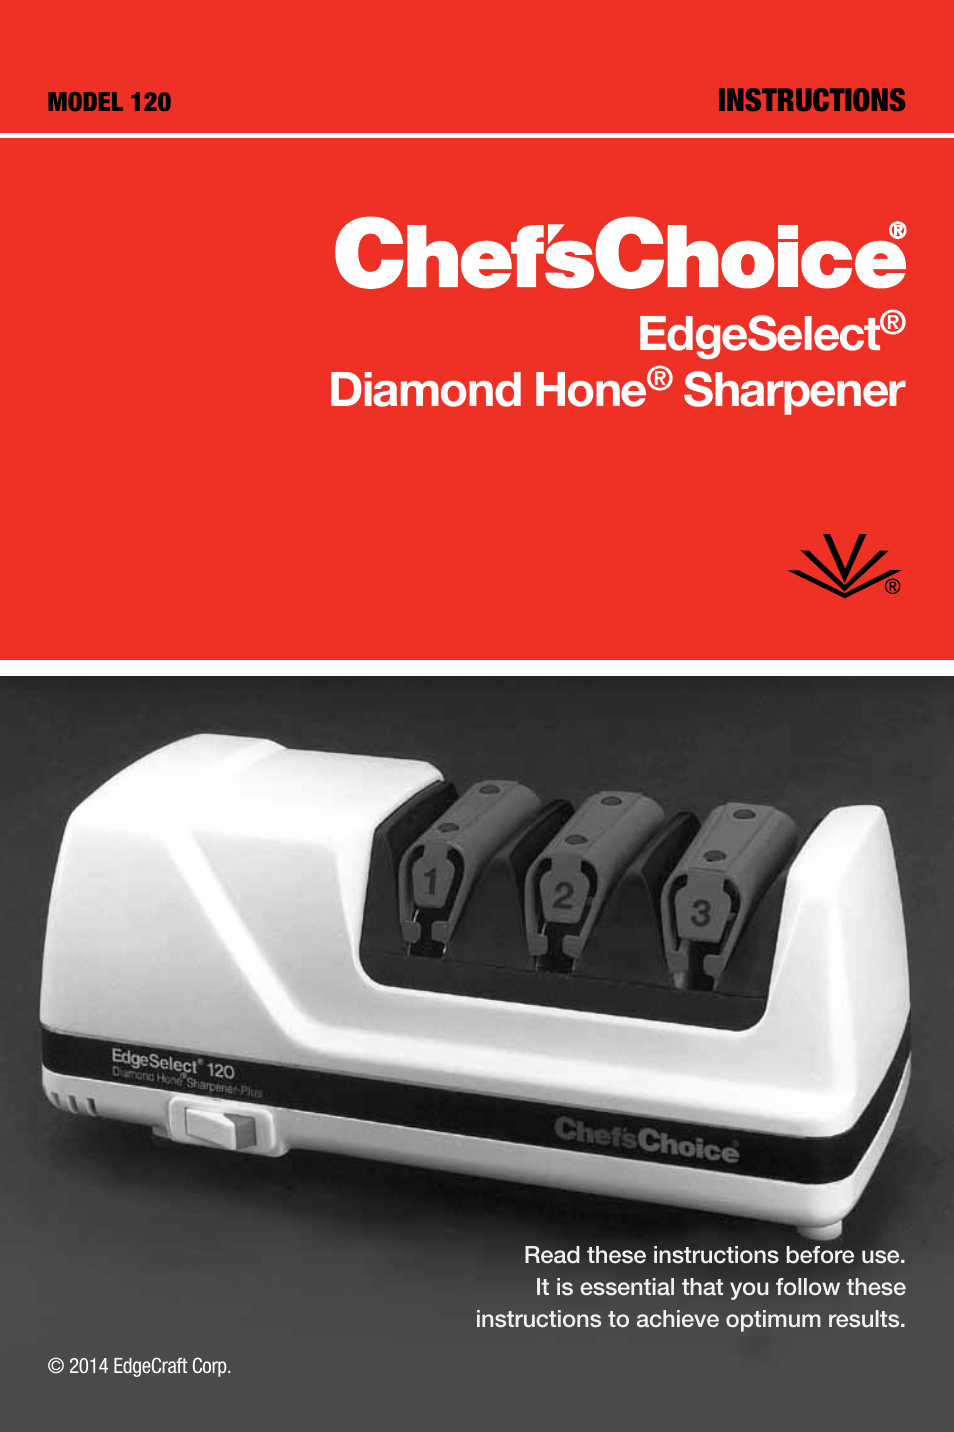 edgecraft chef s choice 120 user manual 12 pages rh manualsdir com Operators Manual Wildgame Innovations Manuals